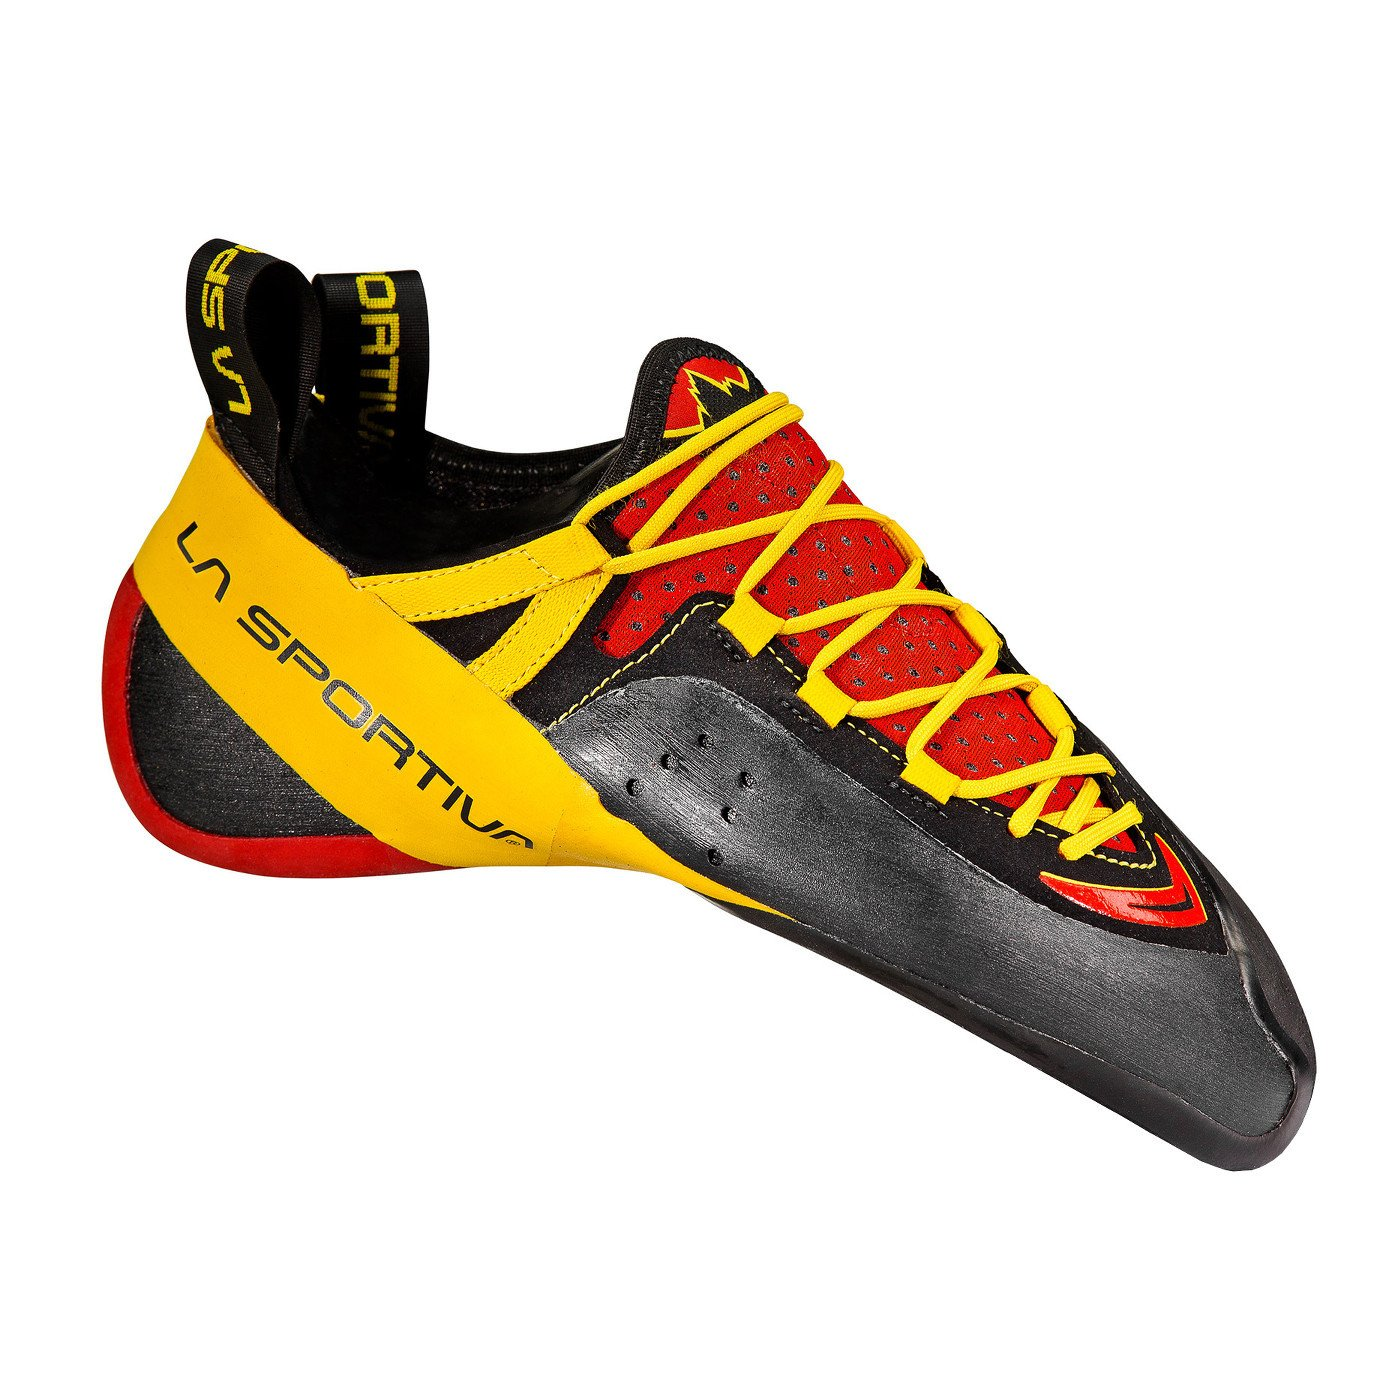 La Sportiva Genius climbing shoe, in black, red and yellow colours